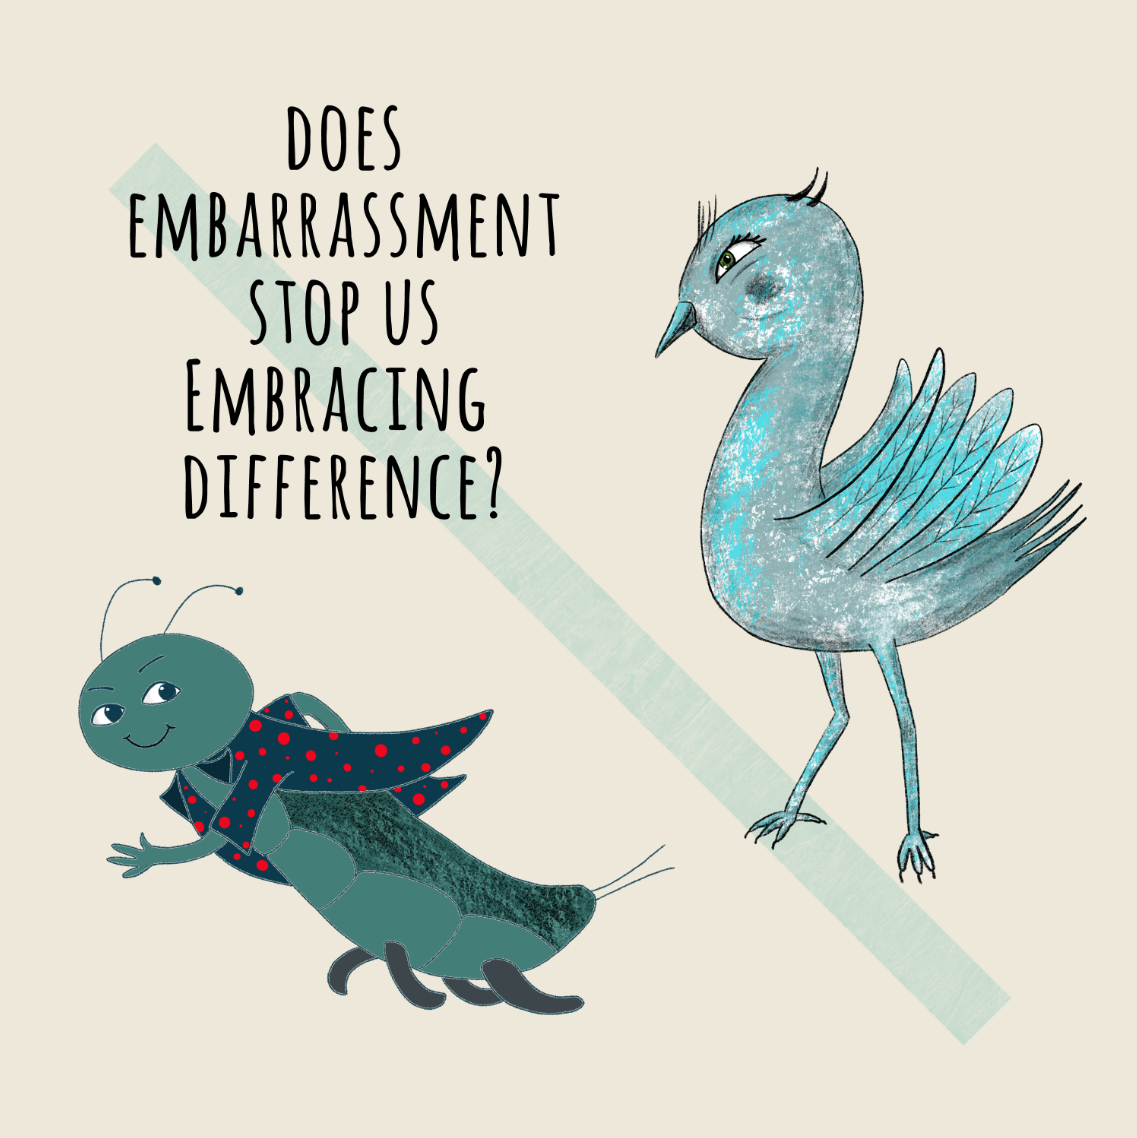 embracing difference